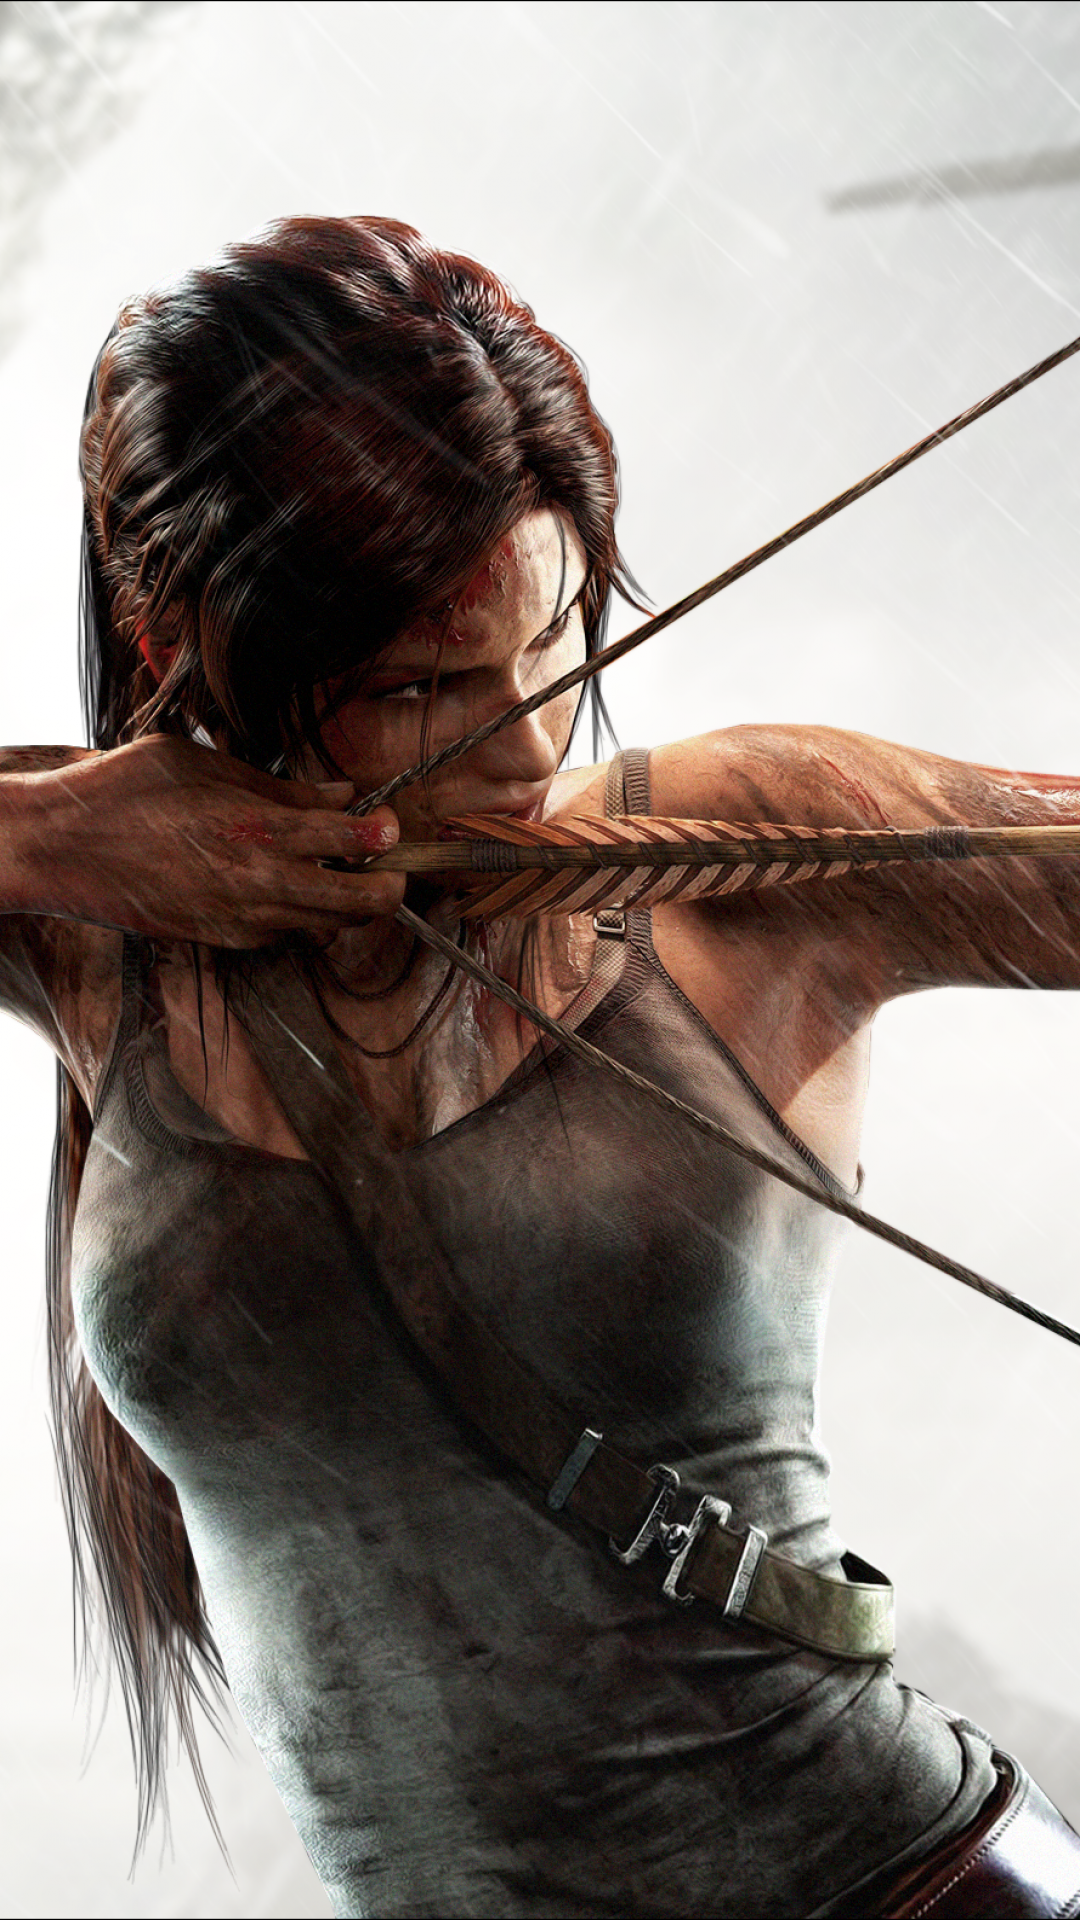 Tomb Raider Iphone Wallpapers Top Free Tomb Raider Iphone